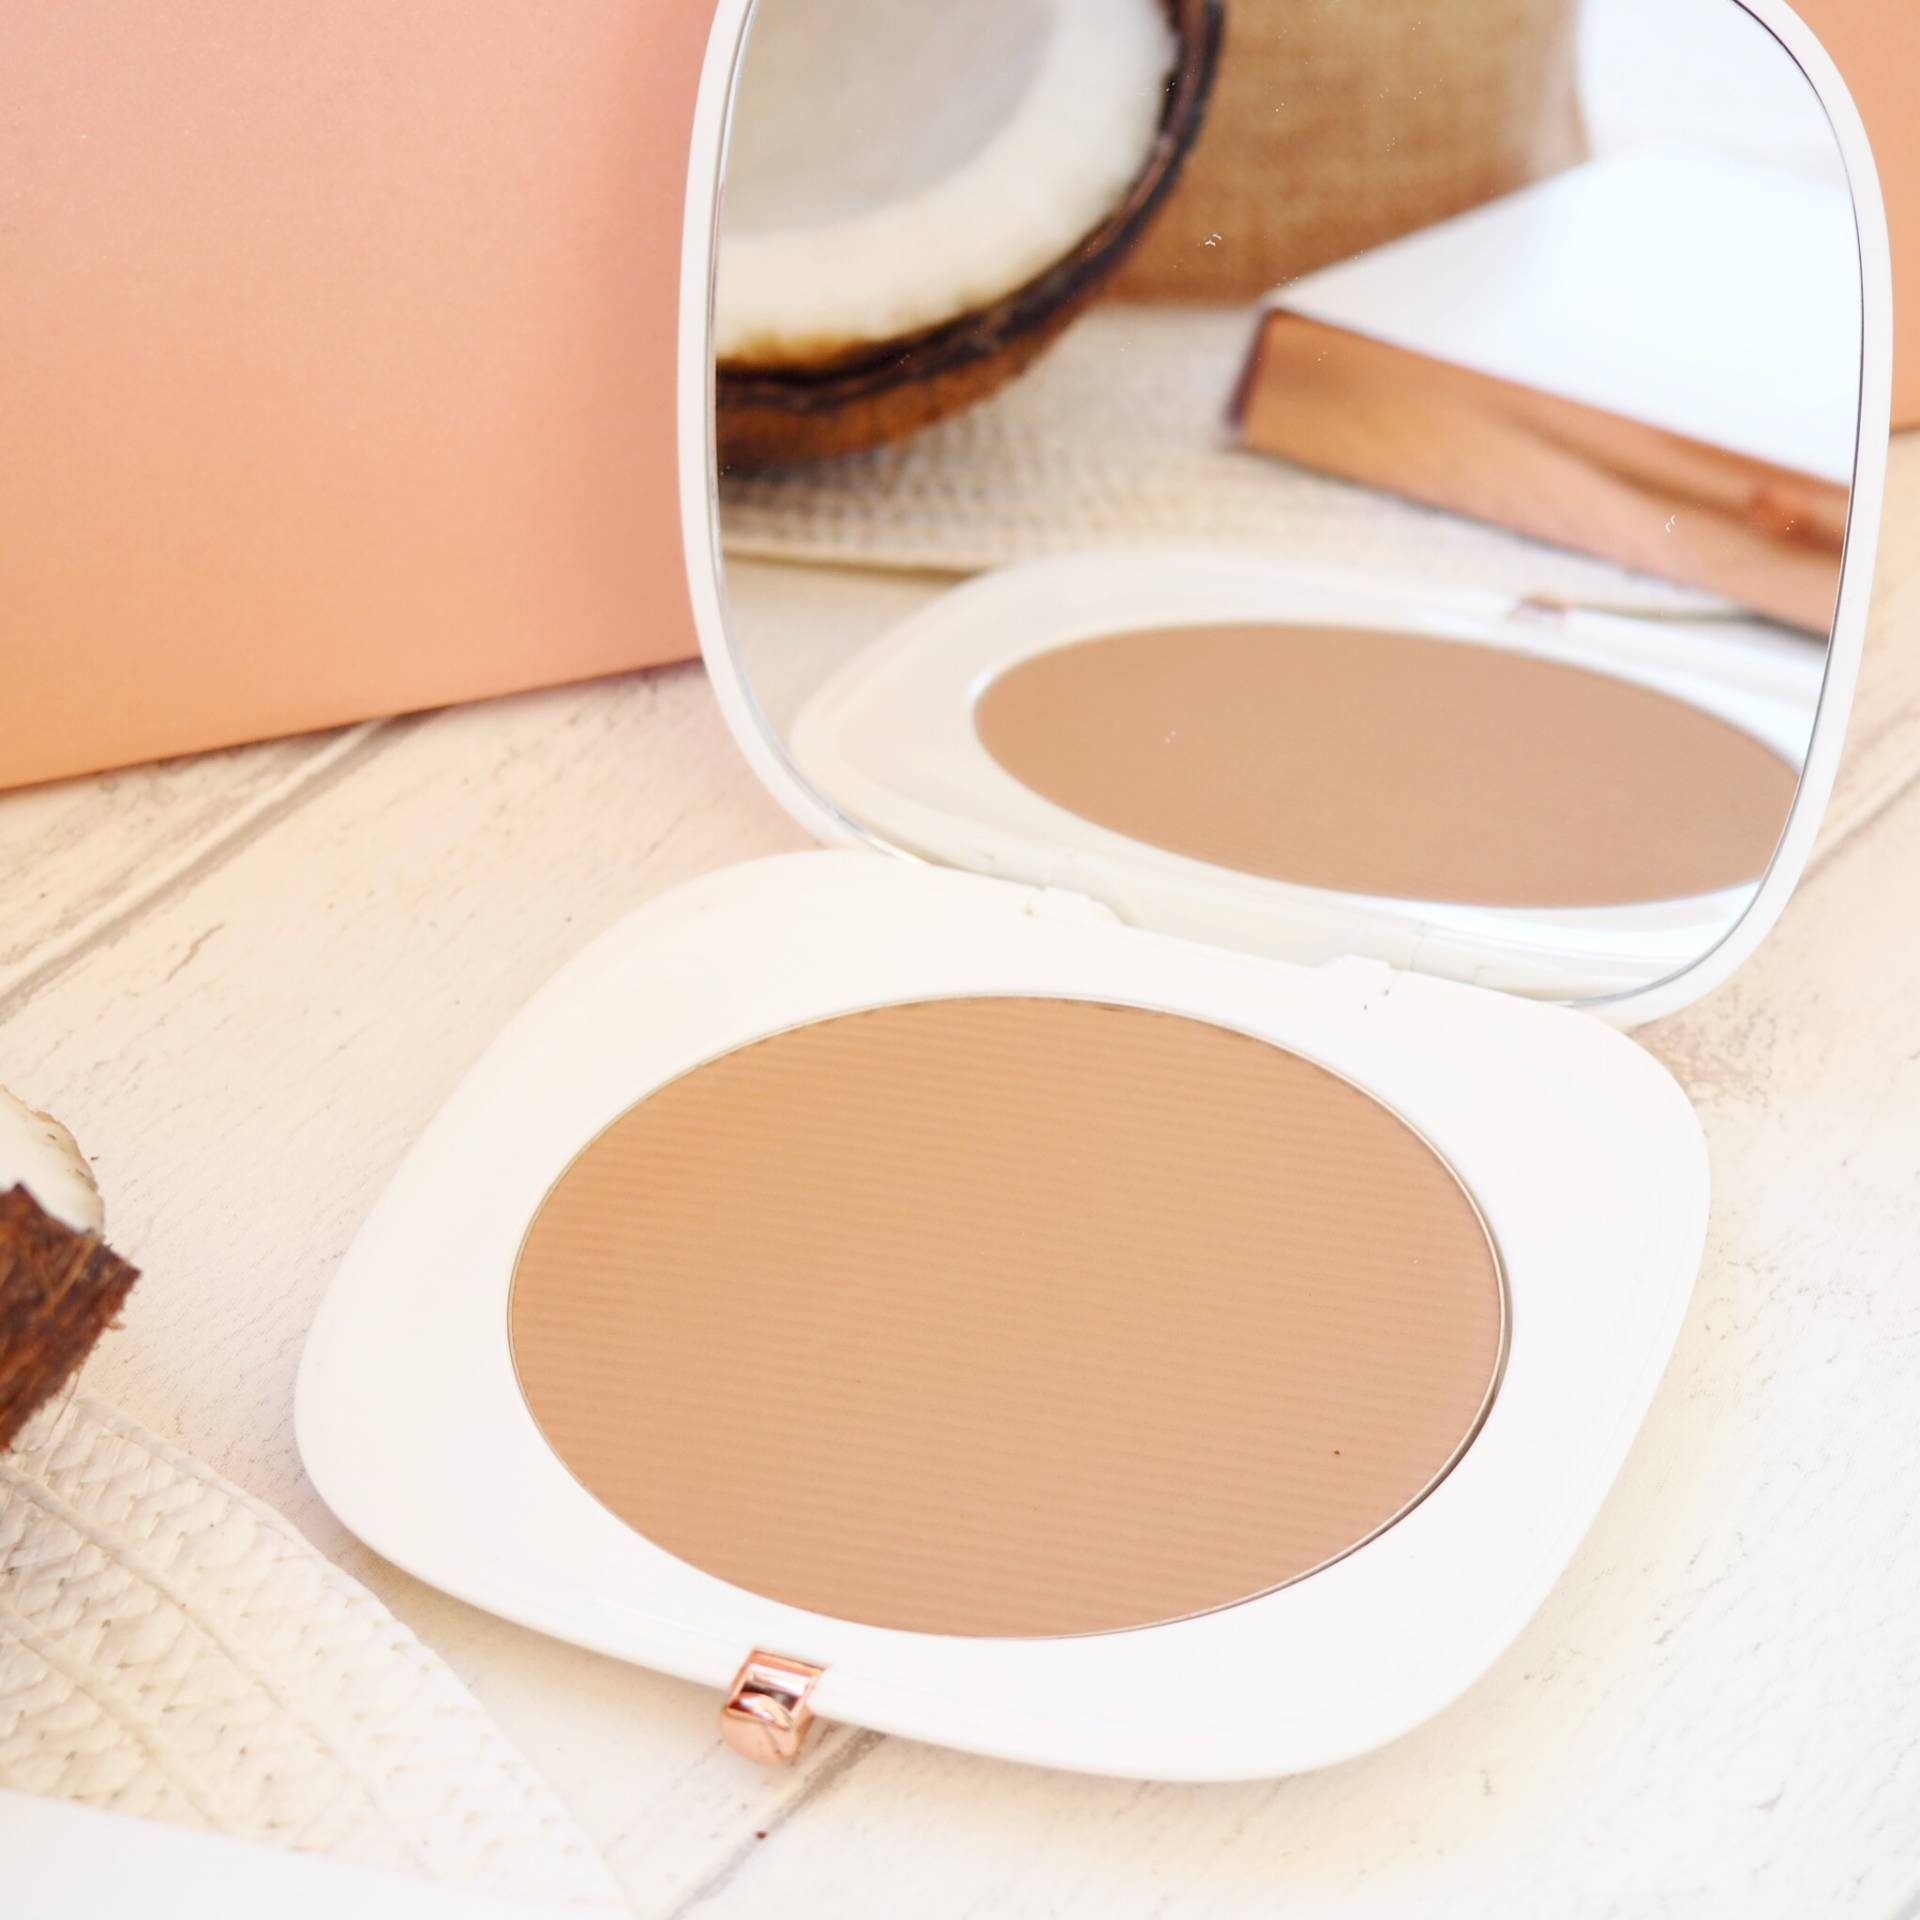 Marc Jacobs Omega Bronzer Review